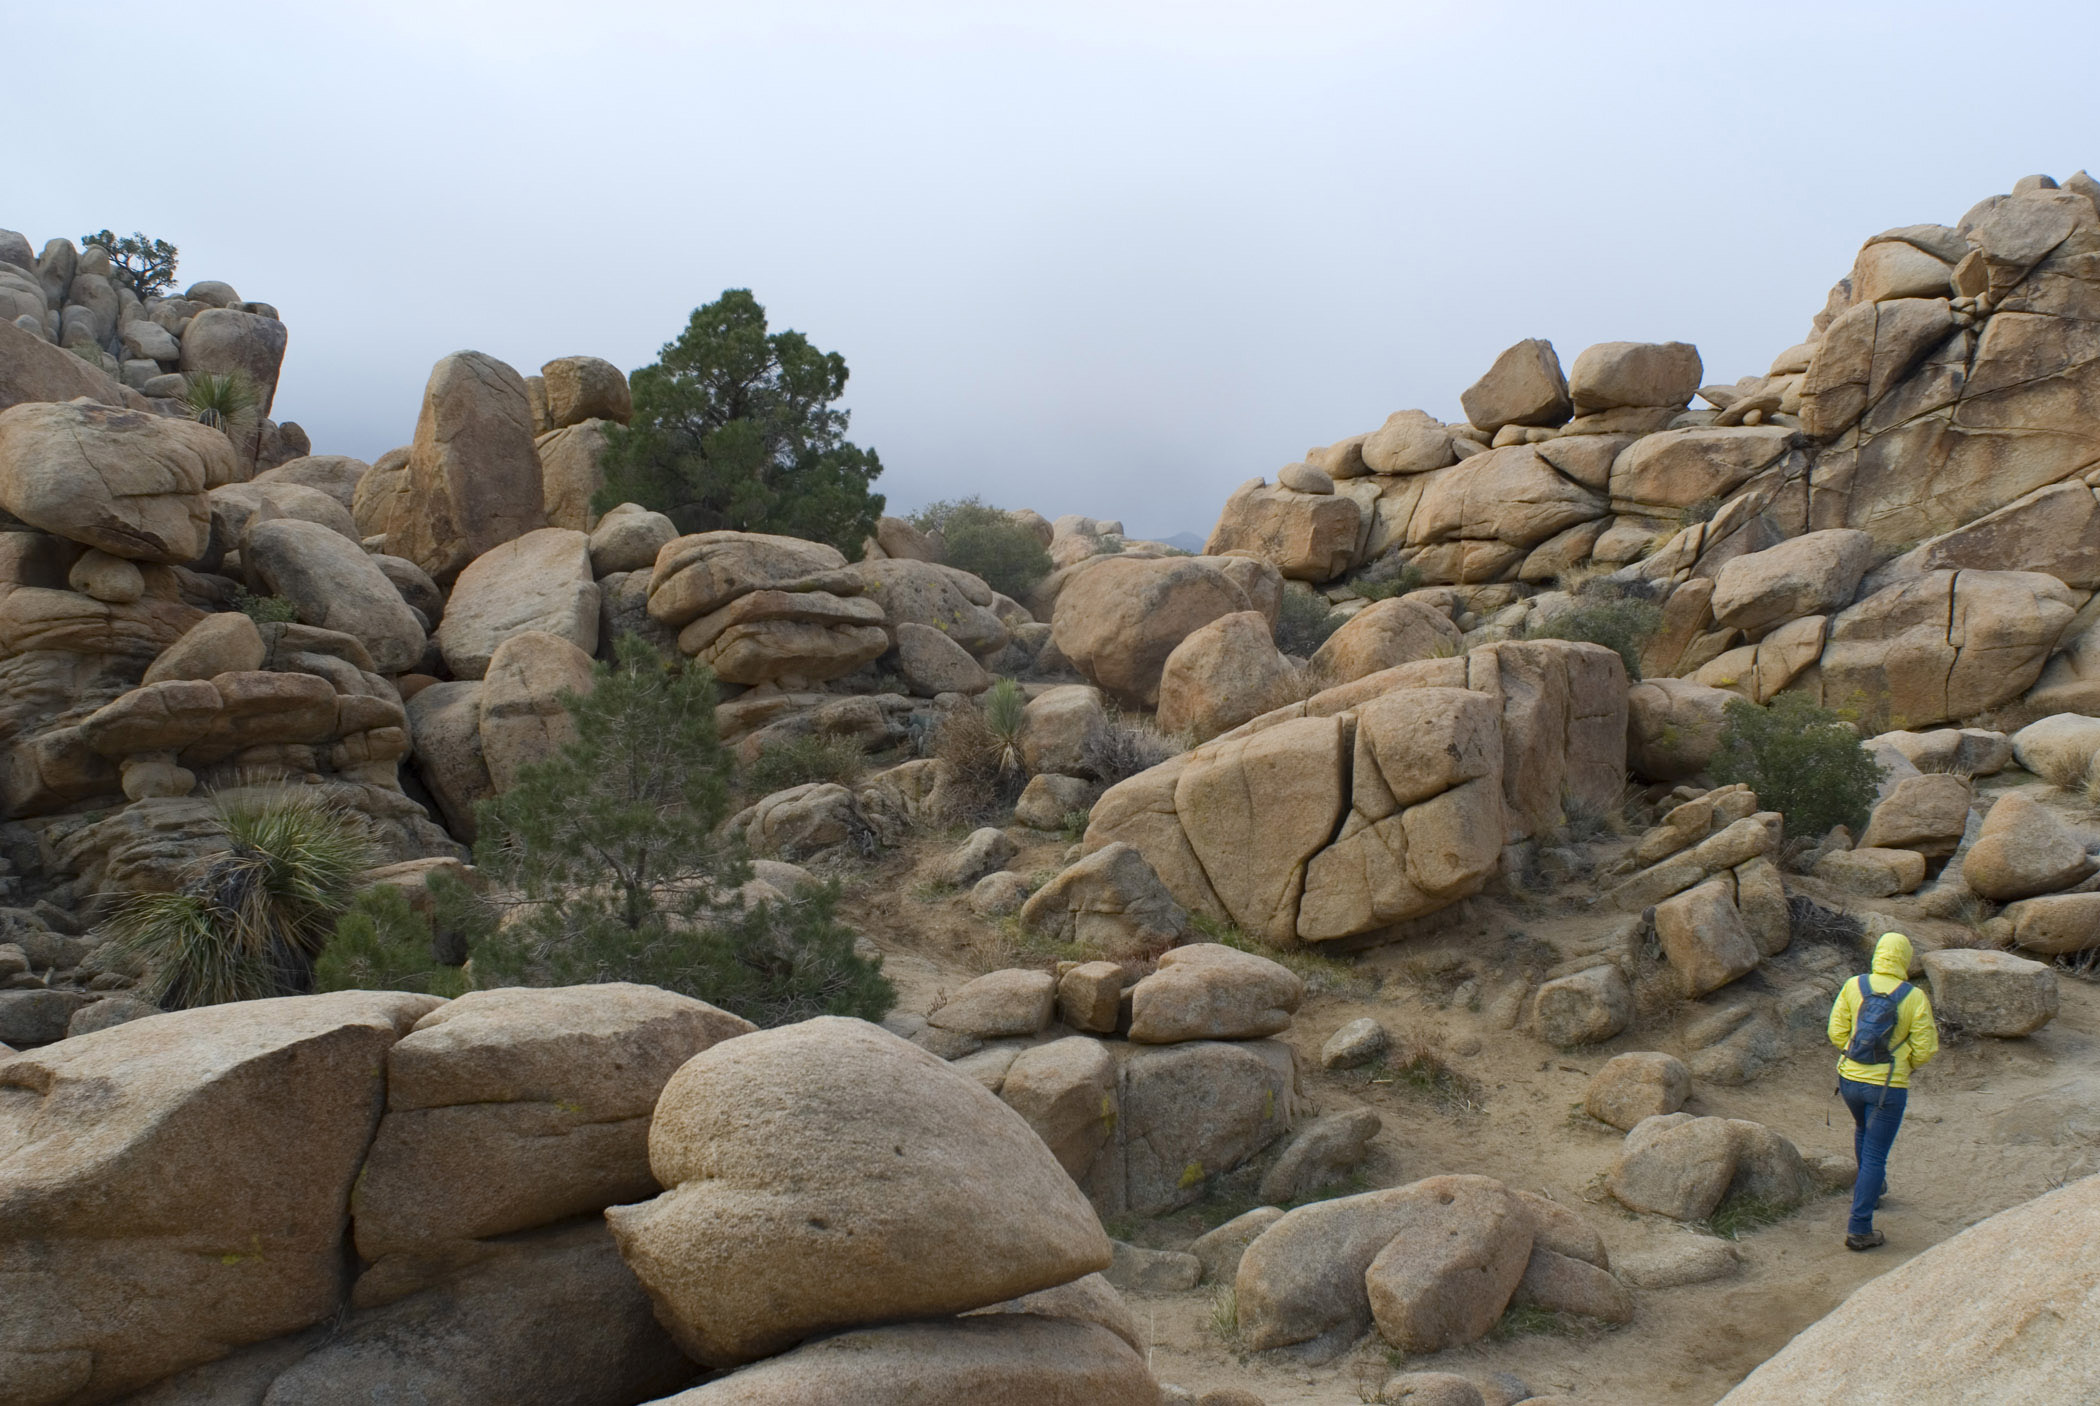 Person Hiking in Rocky Landscape, Joshua Tree National Park, California, USA